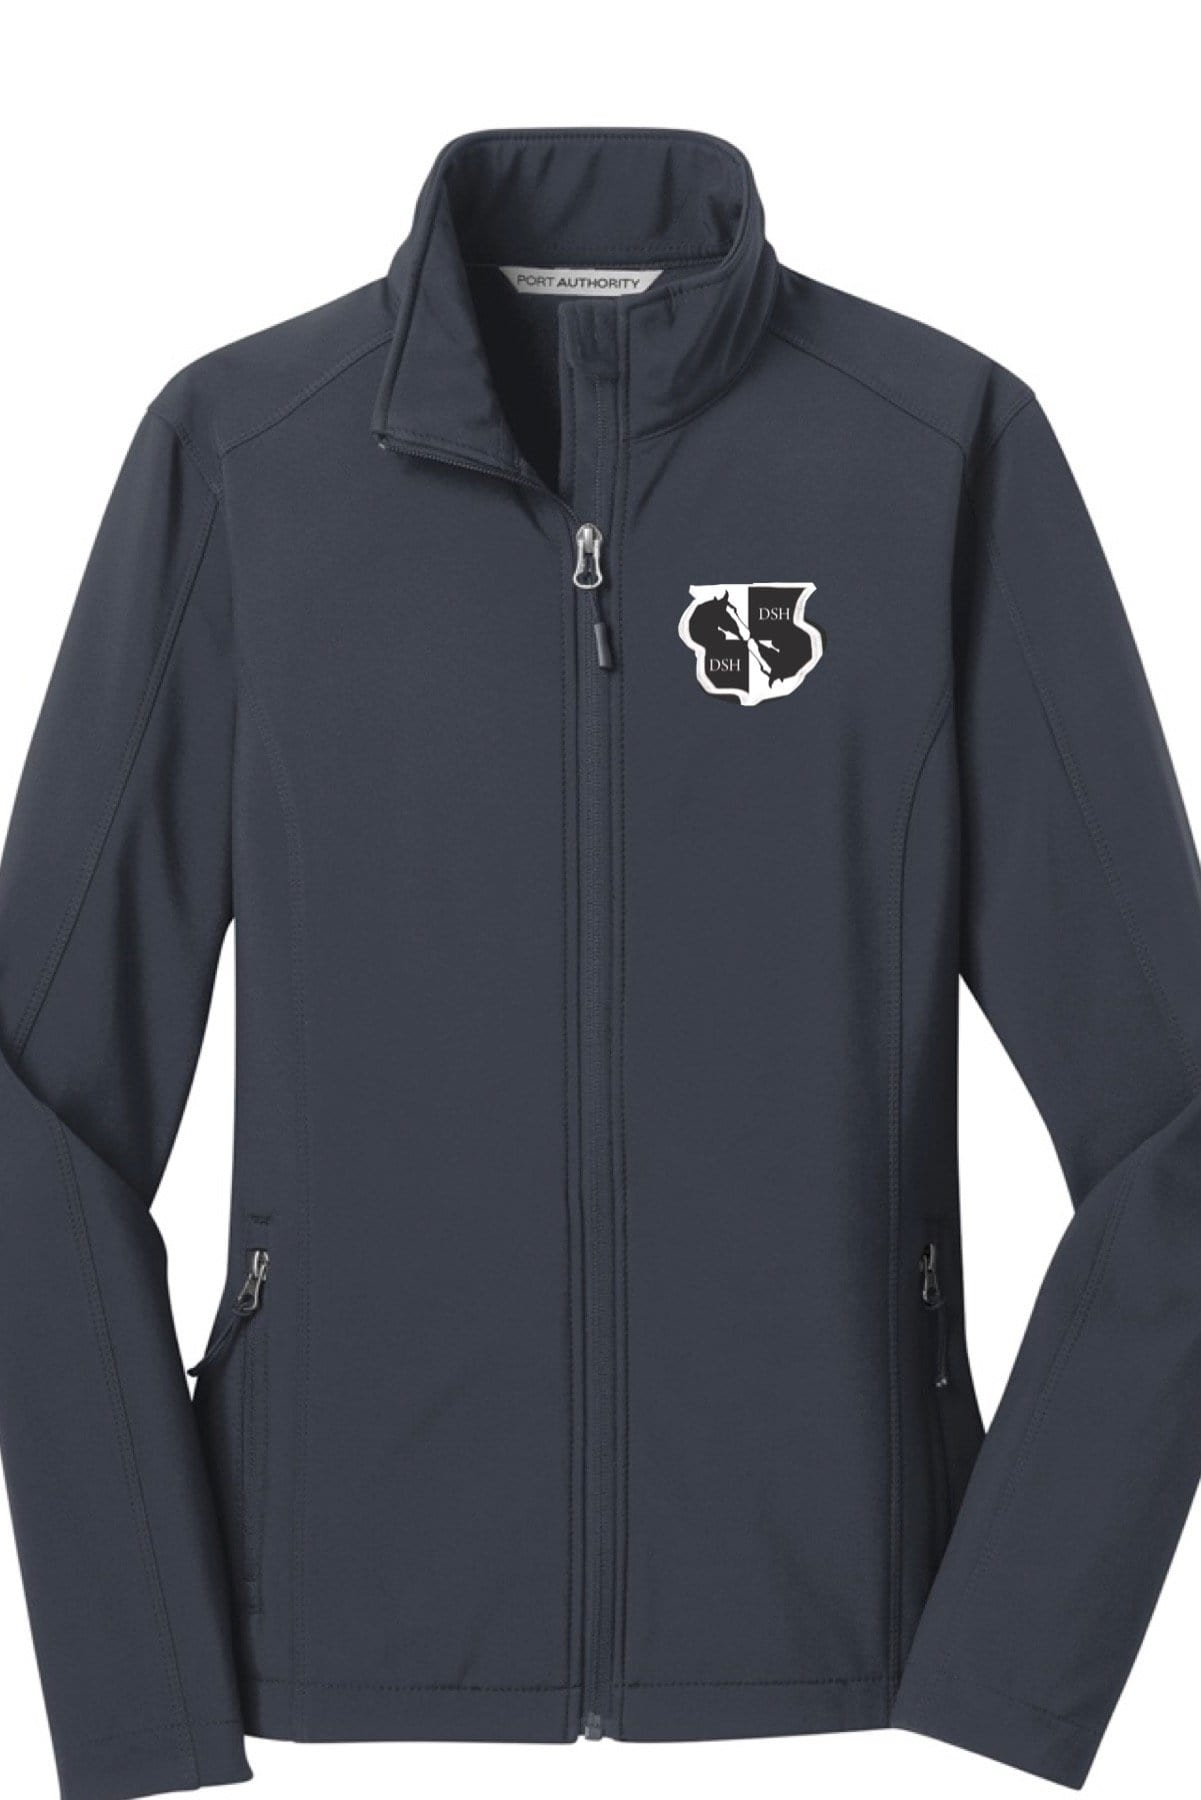 Equestrian Team Apparel Custom Team Jackets DSH Jackets equestrian team apparel online tack store mobile tack store custom farm apparel custom show stable clothing equestrian lifestyle horse show clothing riding clothes horses equestrian tack store